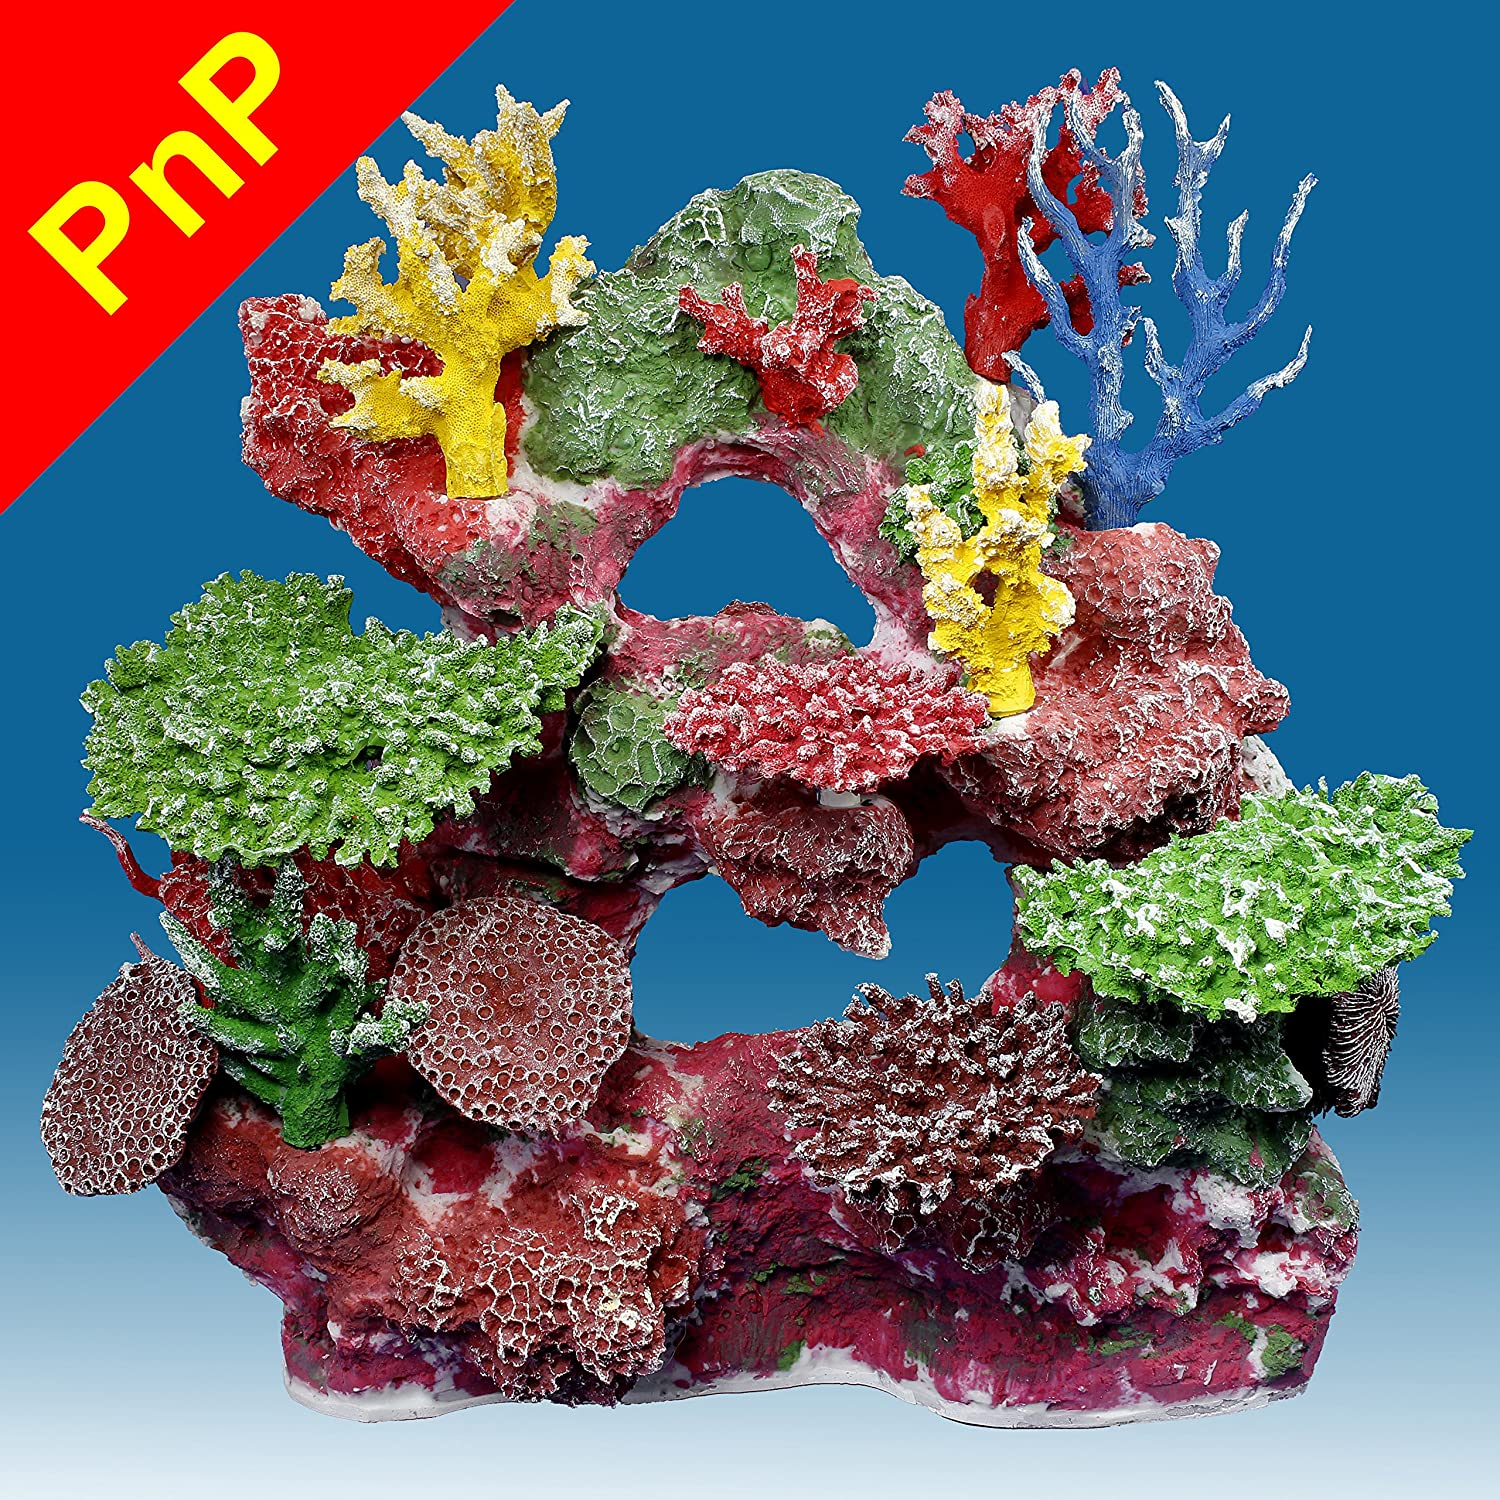 decoration content background global reef inflowcomponent decor fish sided tropical technicalissues res tank s x p aquarium inflow coral